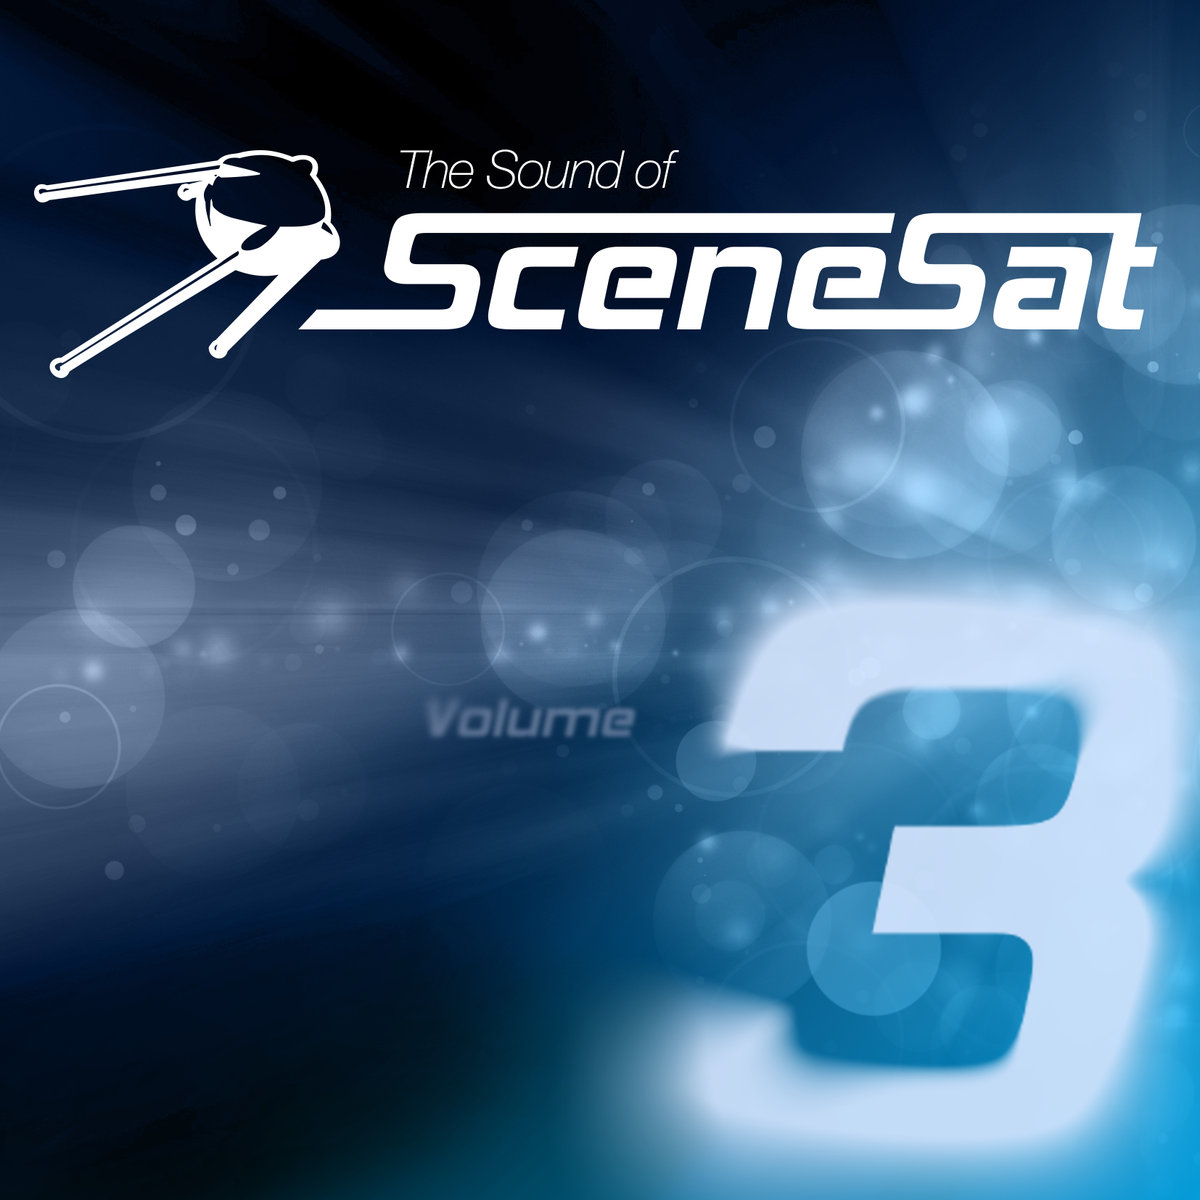 Sound of Scenesat Vol 3